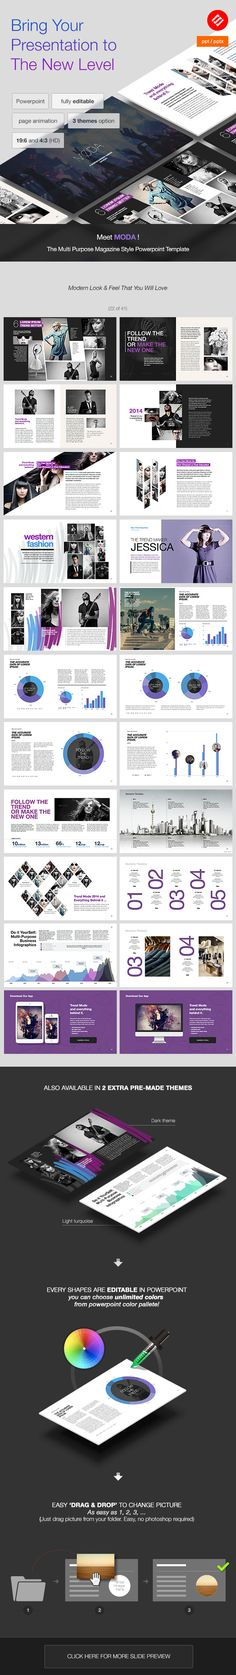 MODA - Modern Powerpoint Template PowerPoint Template / Theme / Presentation / Slides / Background / Power Point #powerpoint #template #theme